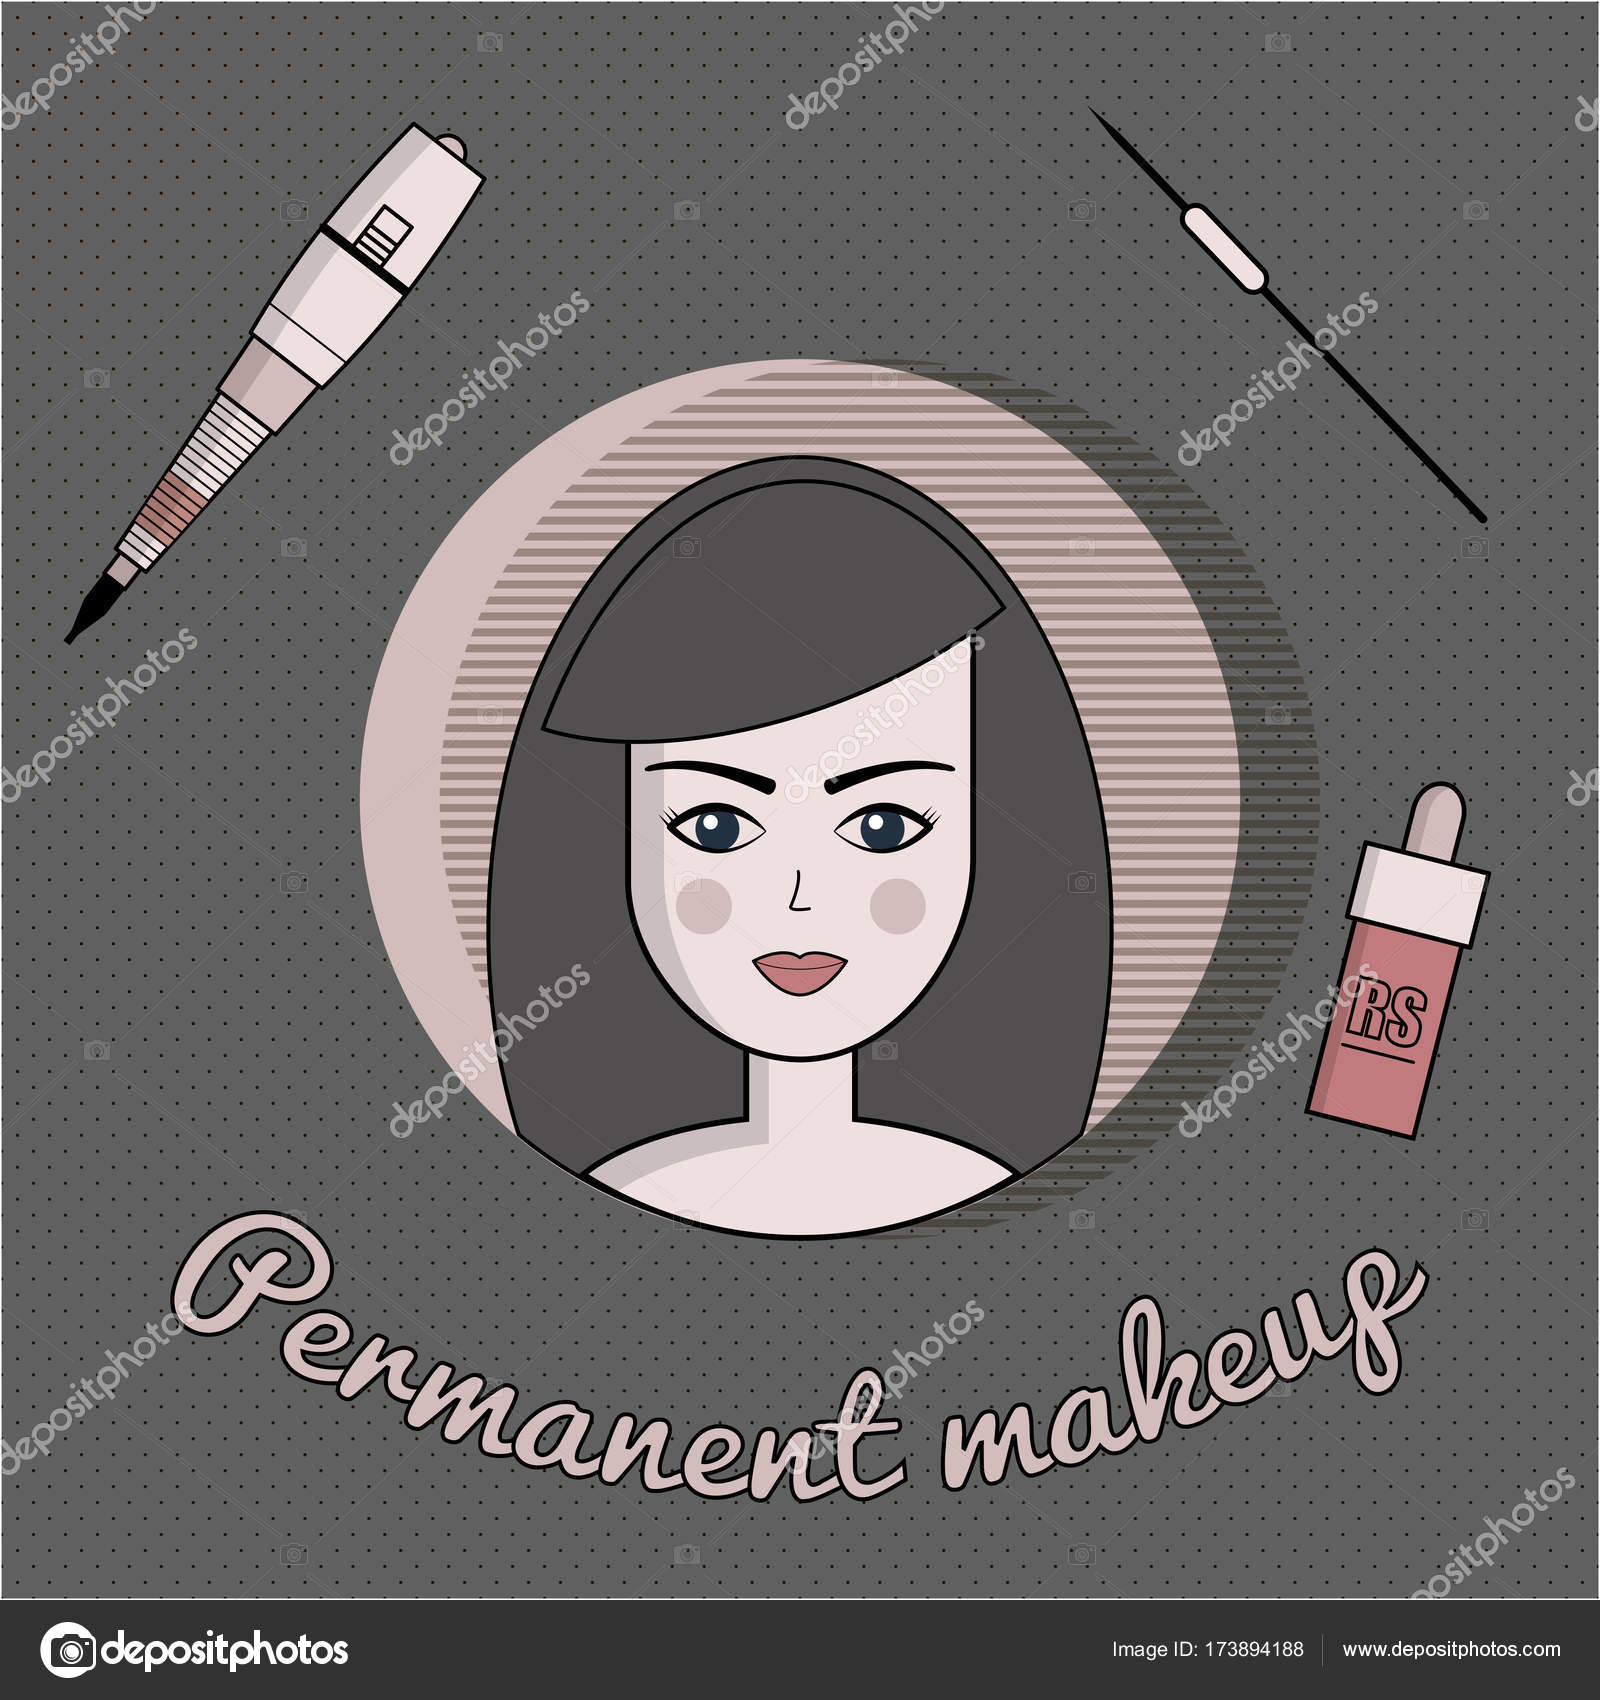 Vector Set Of Equipment For Permanent Make Up Used For Icons On The